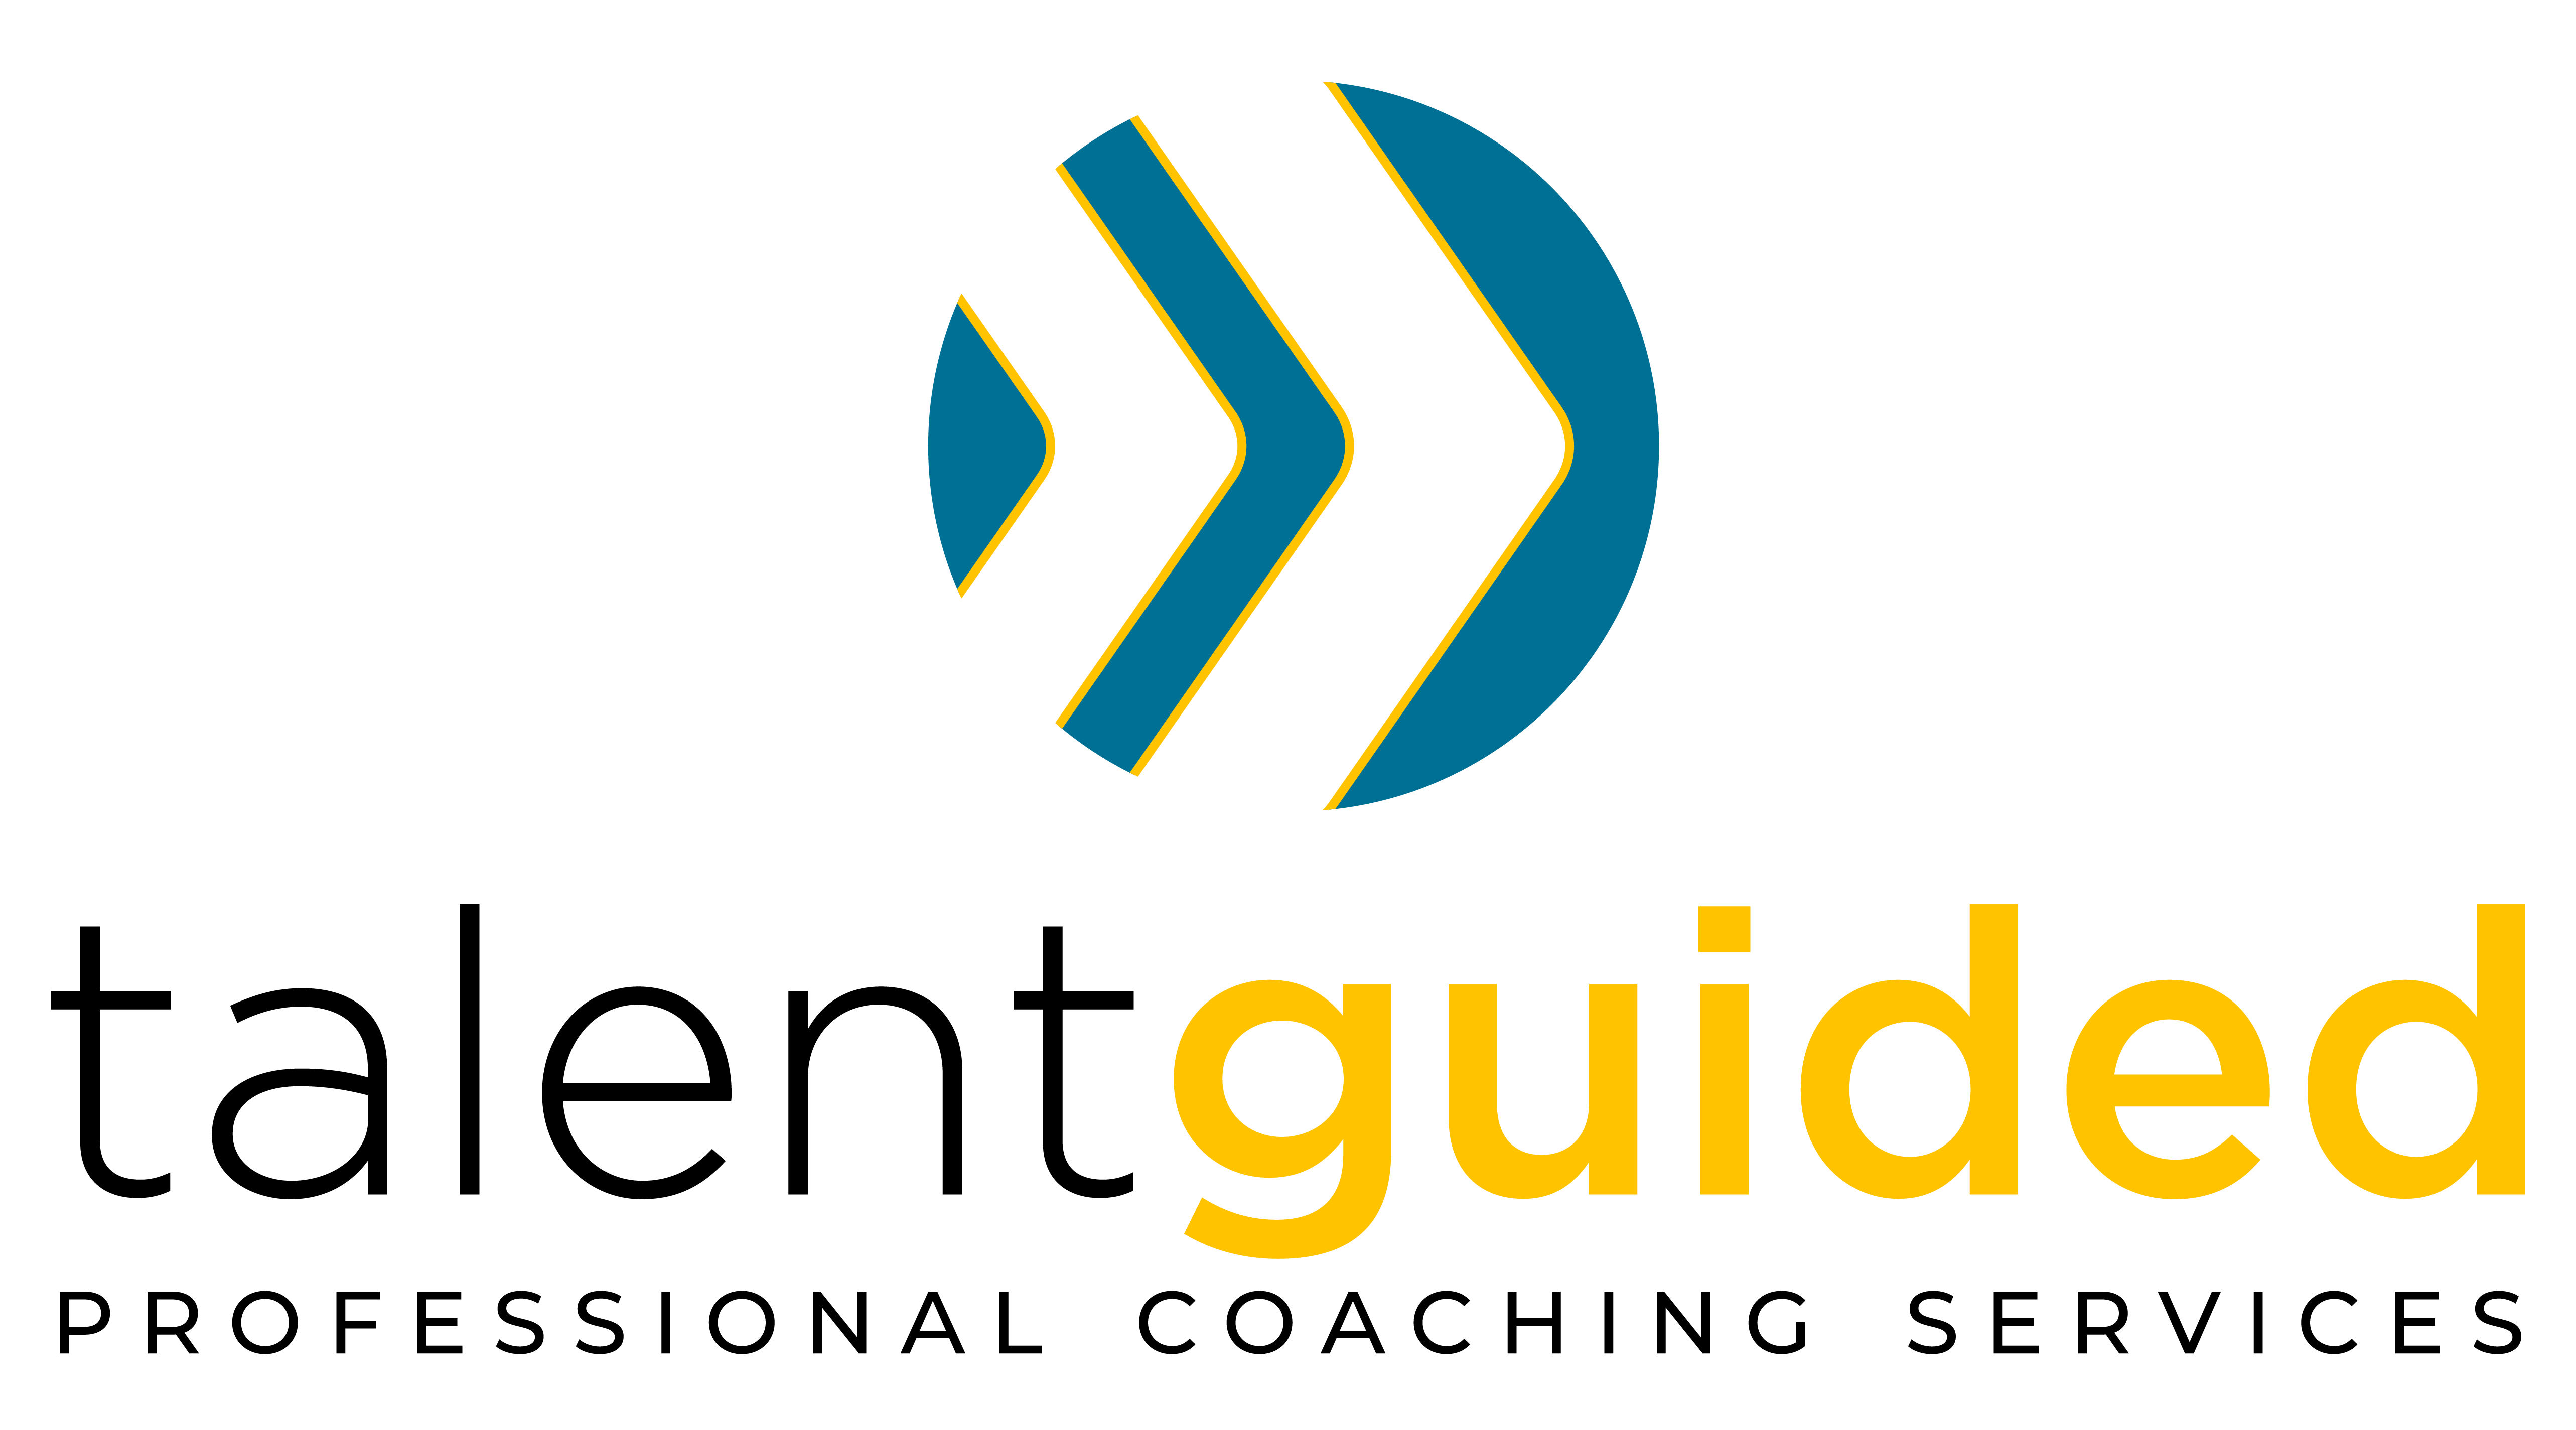 talentguided logo